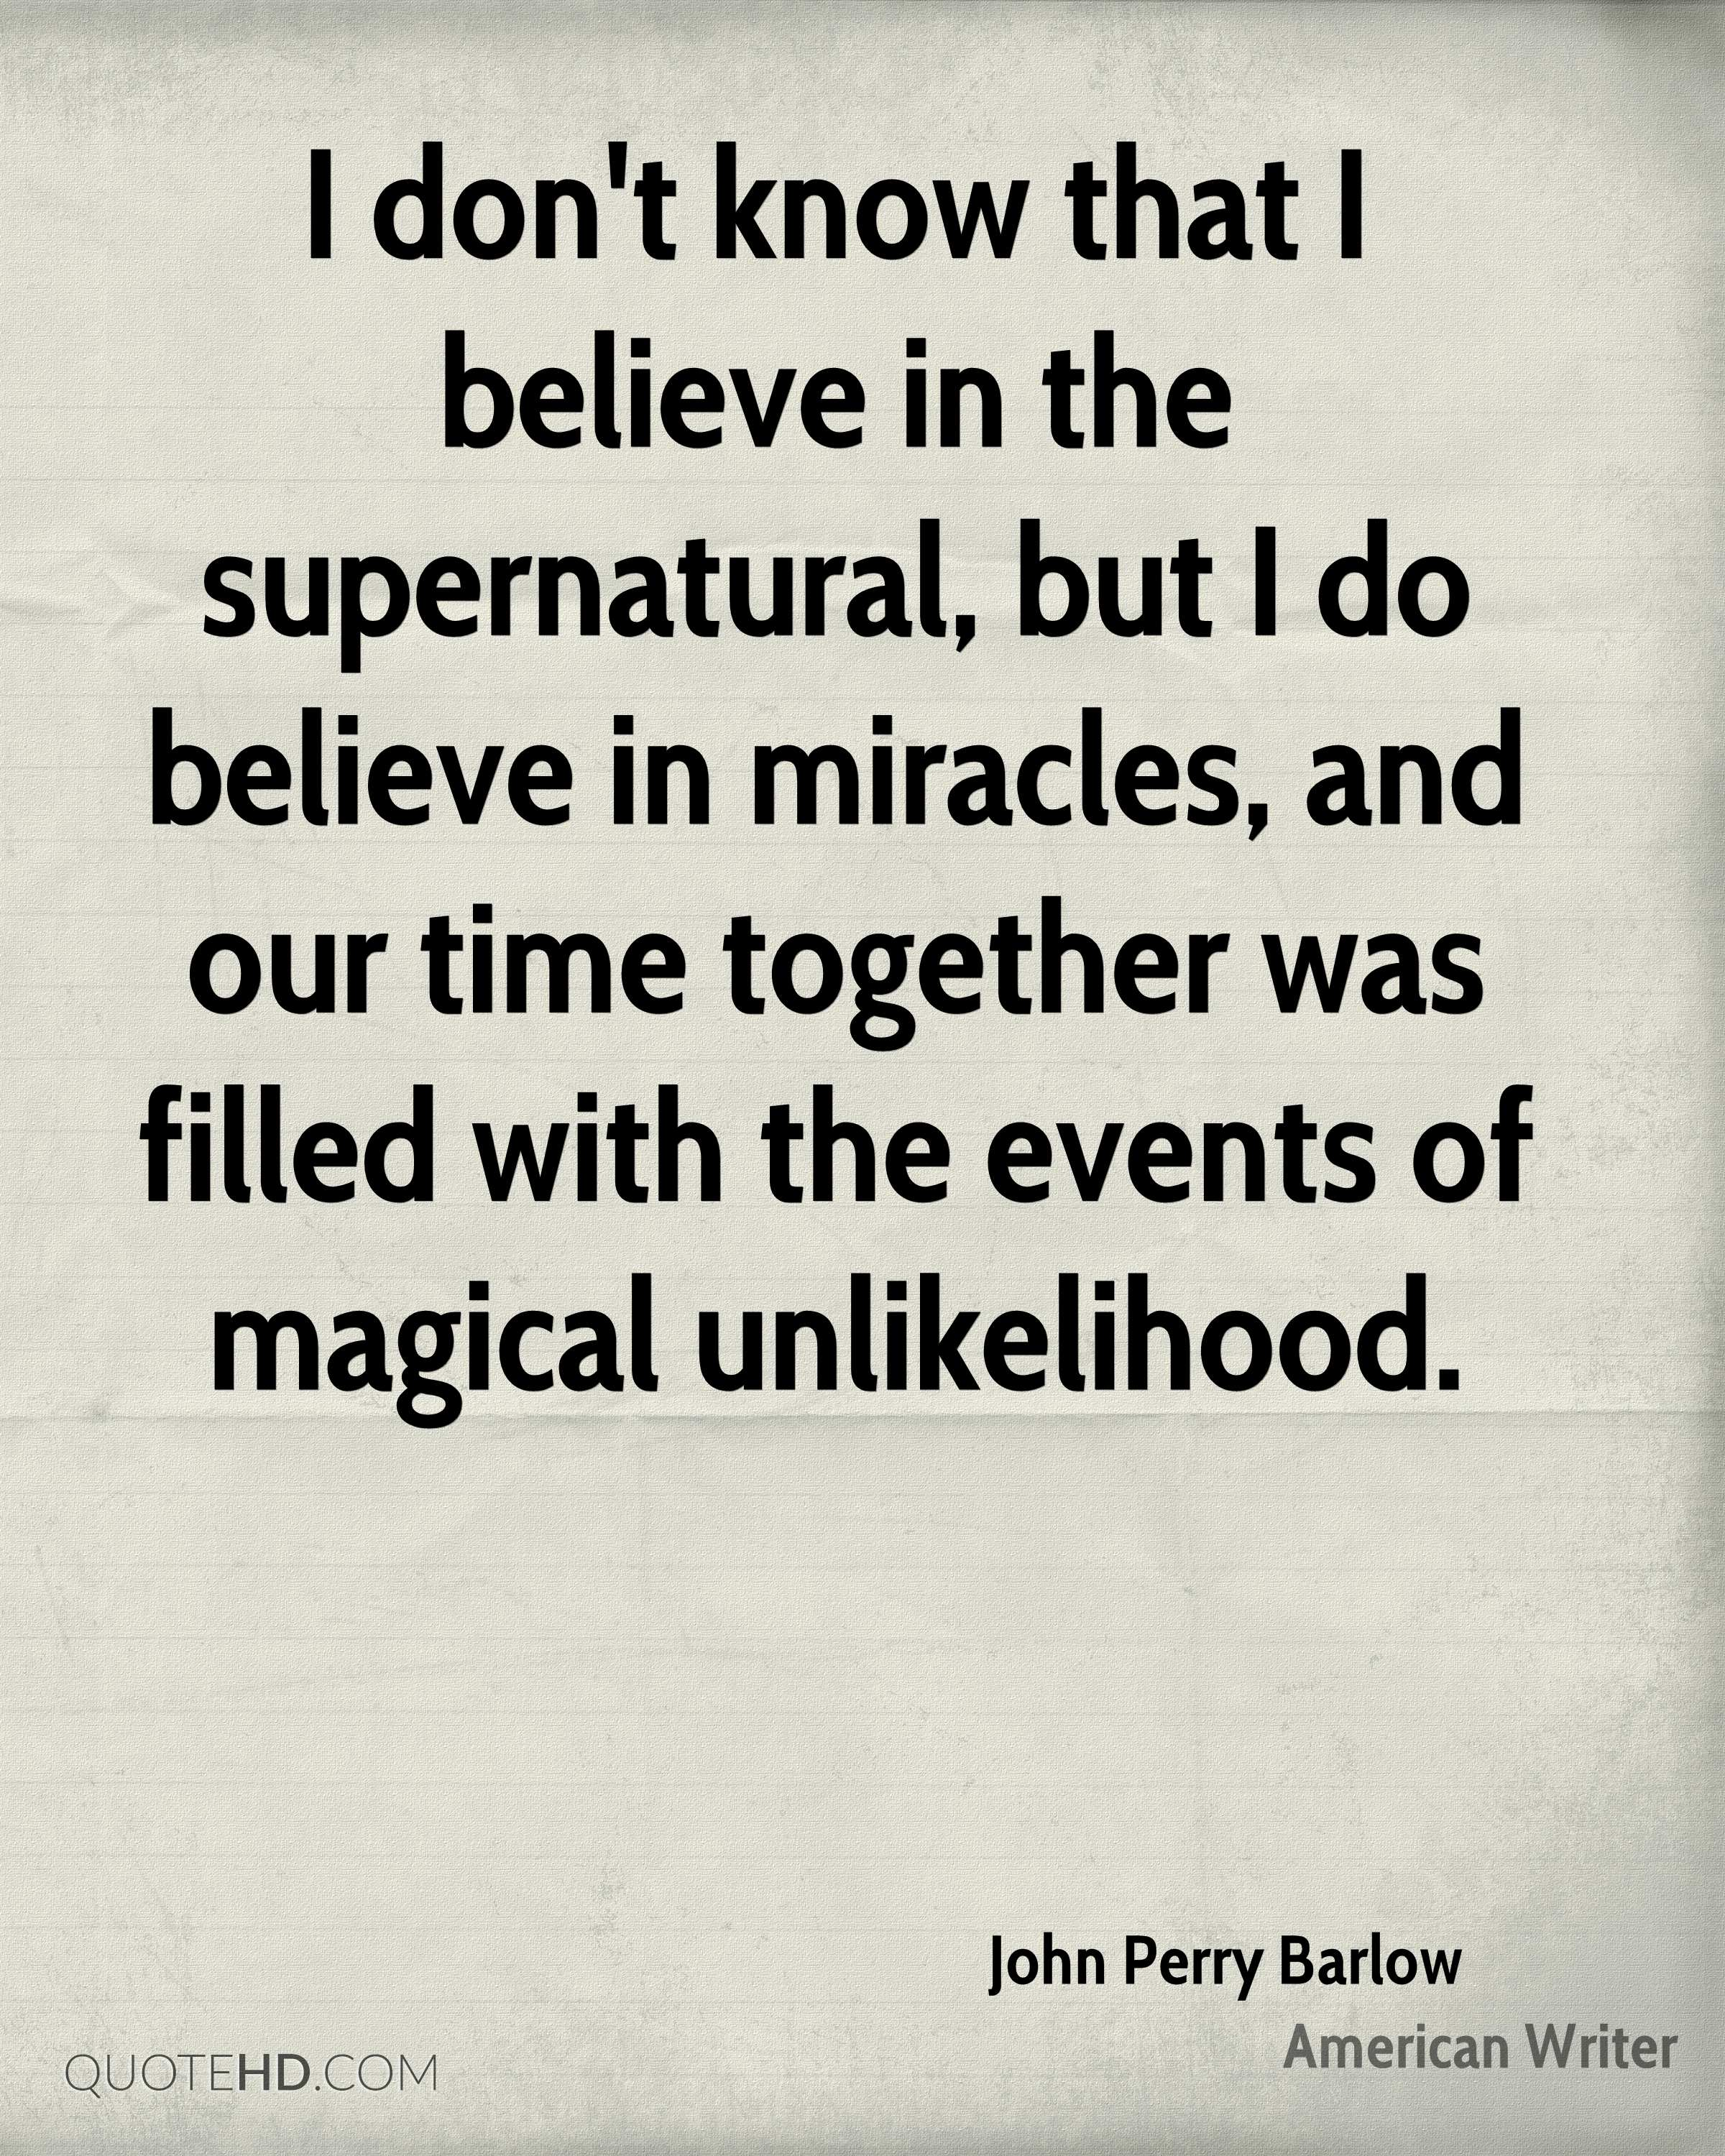 I don't know that I believe in the supernatural, but I do believe in miracles, and our time together was filled with the events of magical unlikelihood.